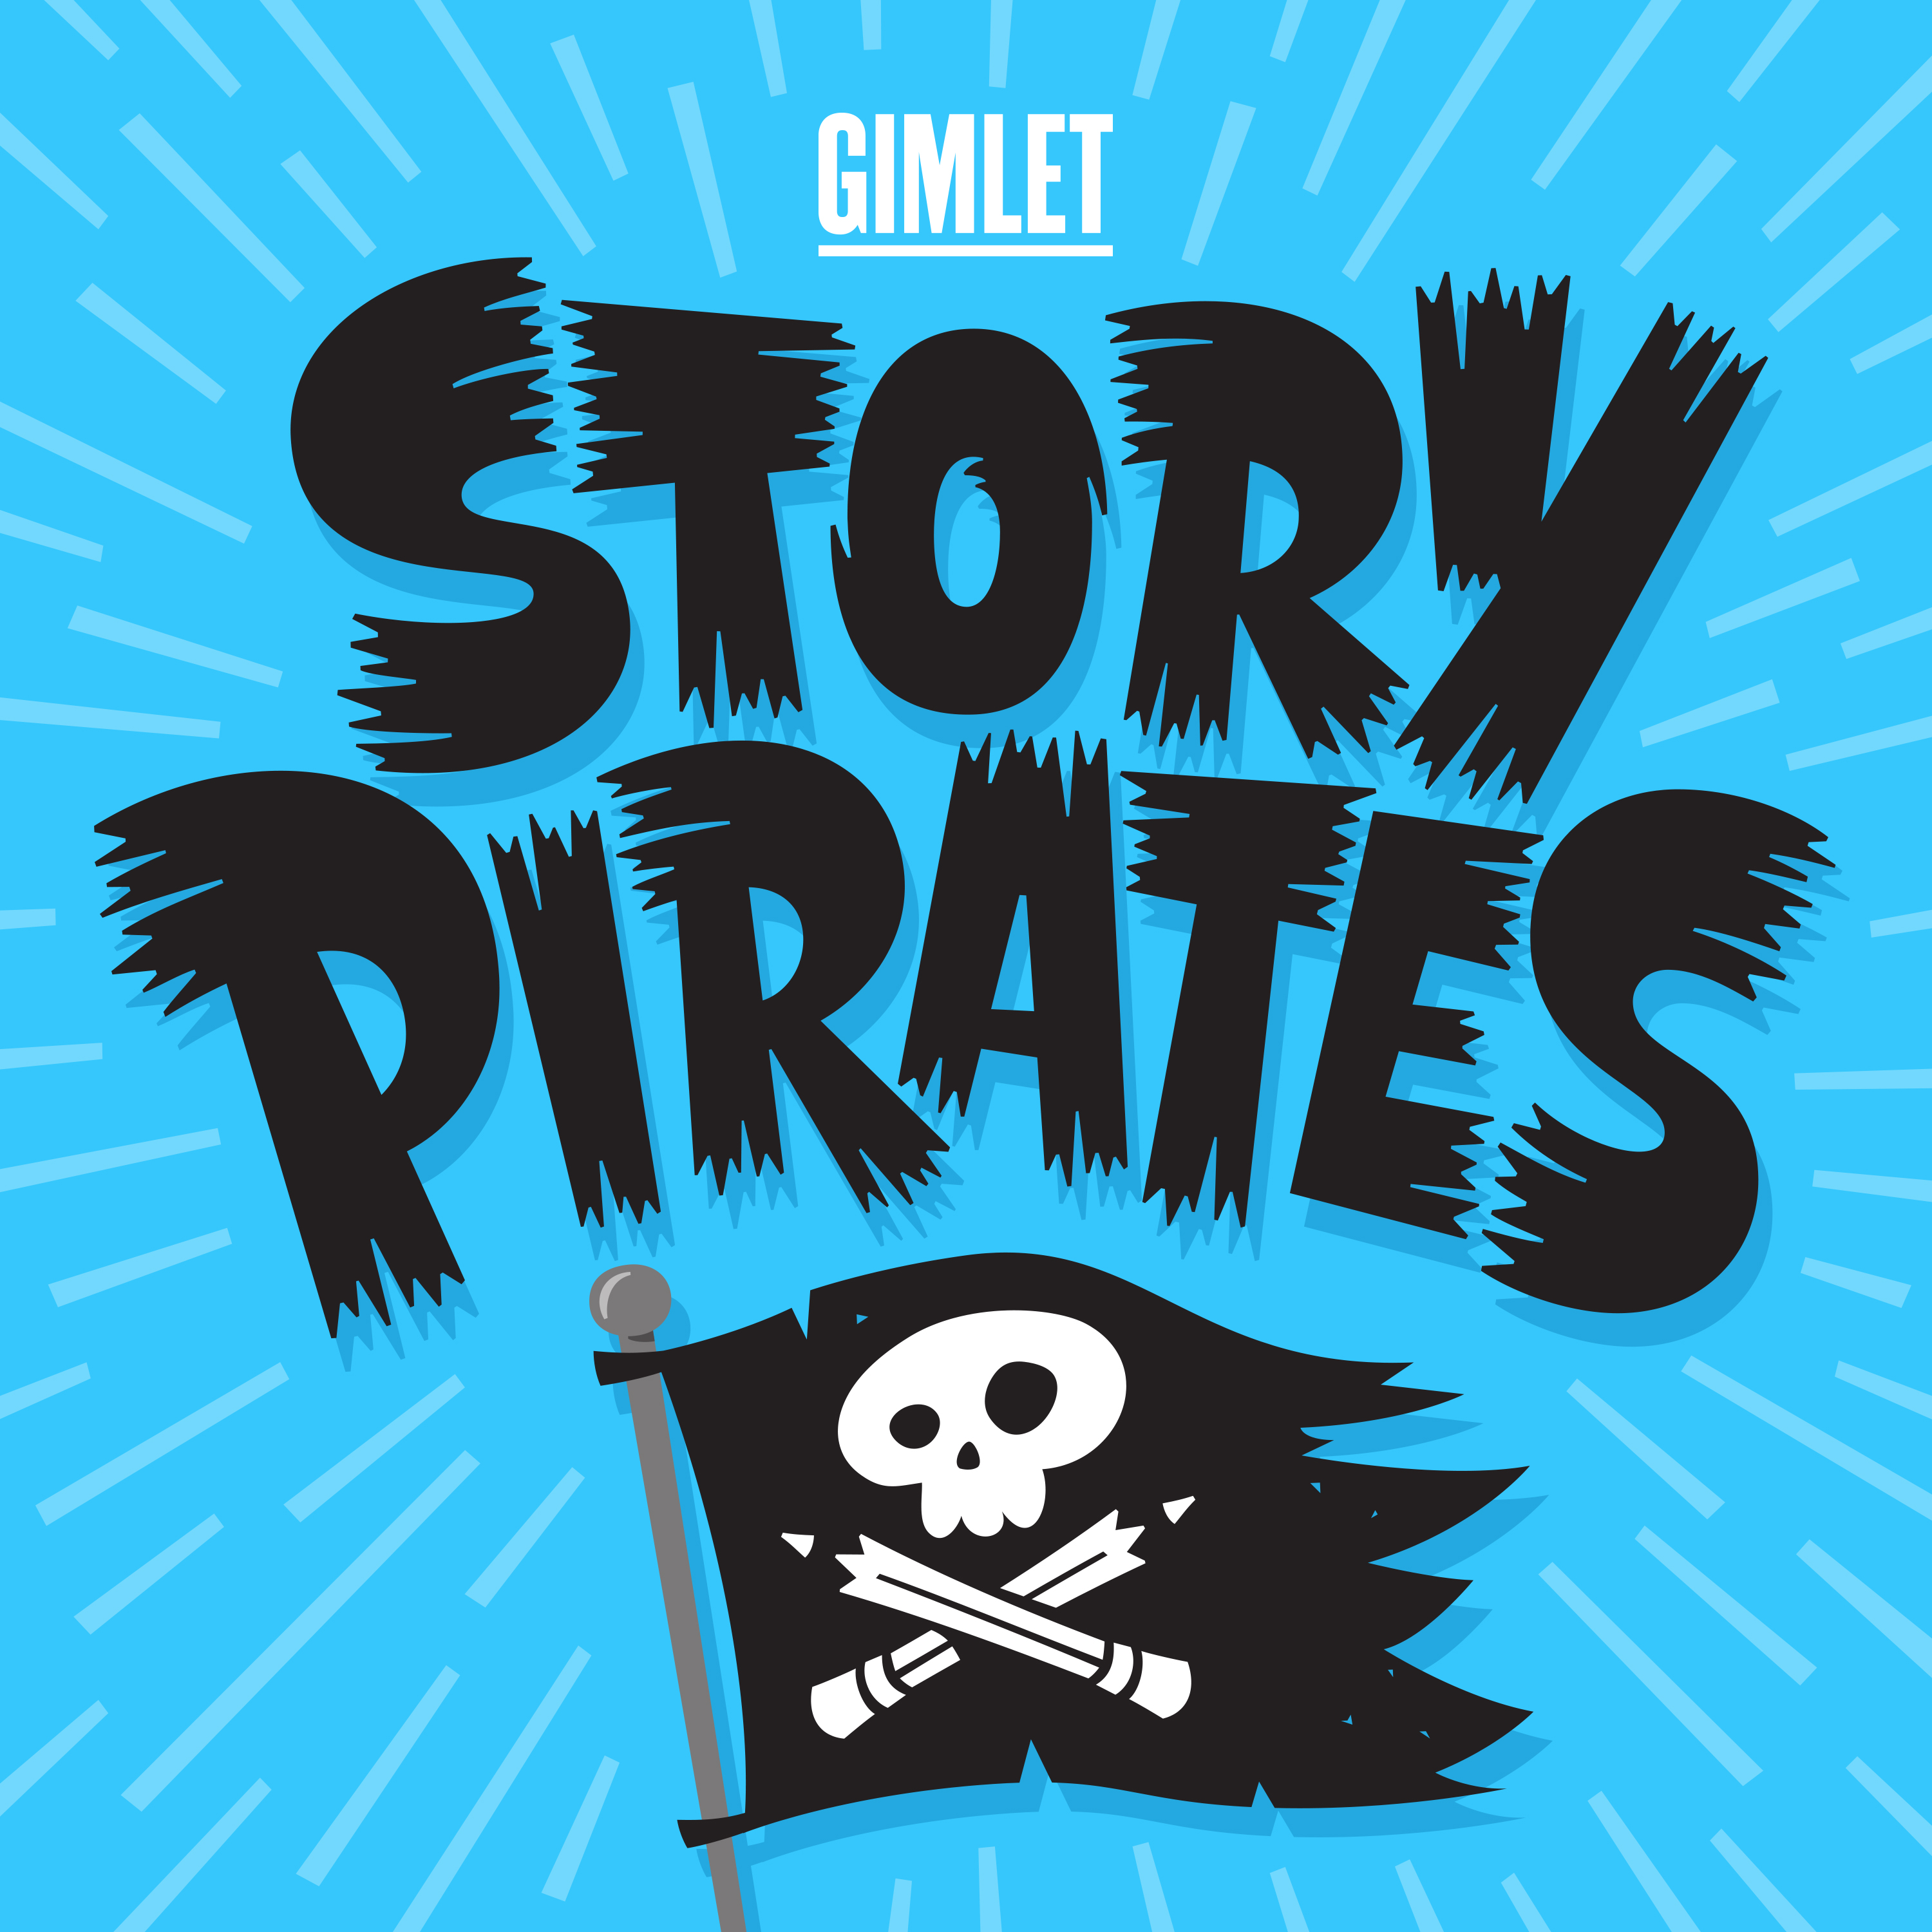 uploads 2F1558660311148 chkiy7qvb 99a14e3a48639ee50198fa4dda5d17cd 2F20190510 Gimlet Story Pirates Cover 281 29